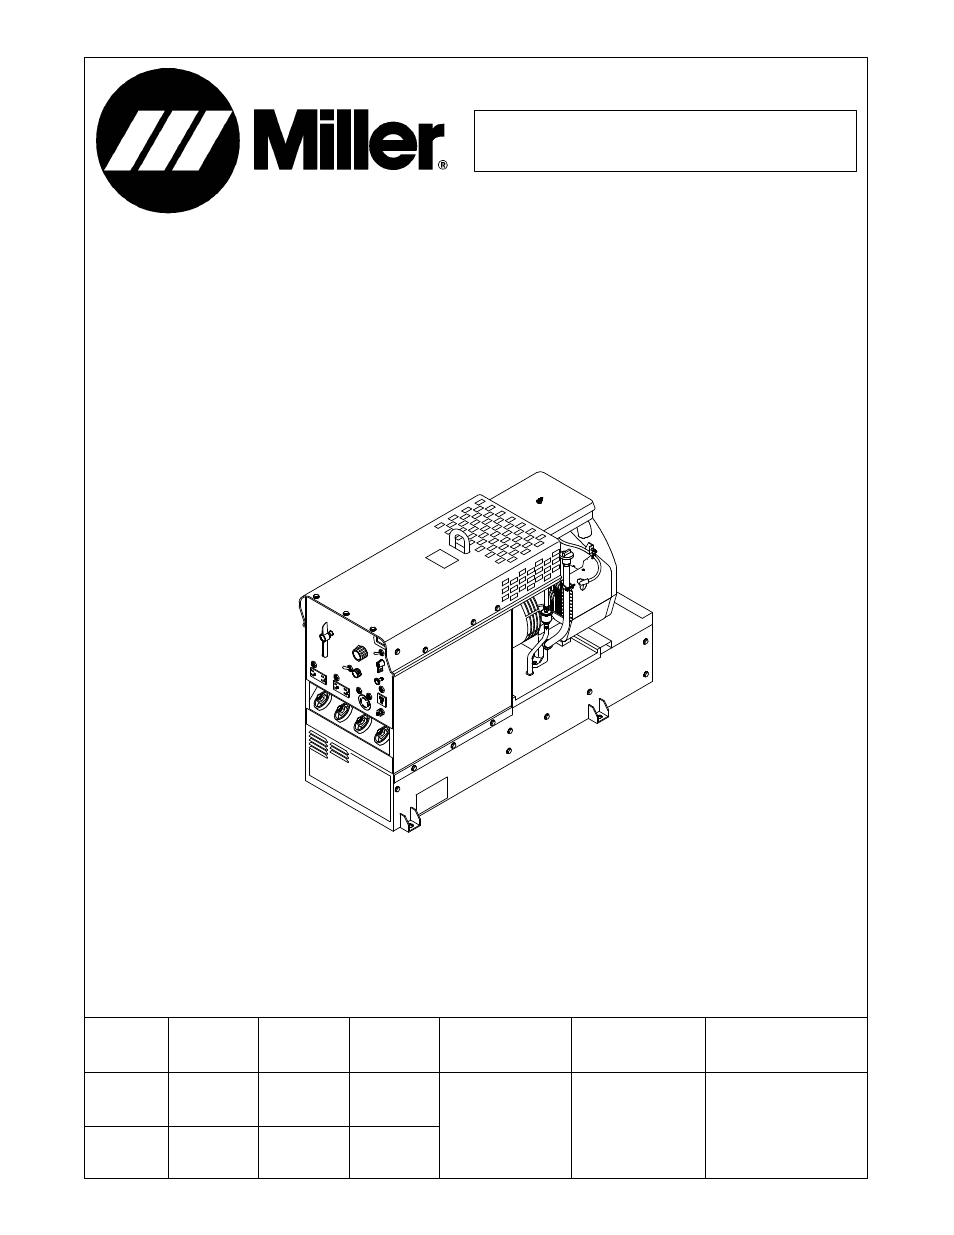 lincoln spool gun wiring diagram  u2022 wiring diagram for free